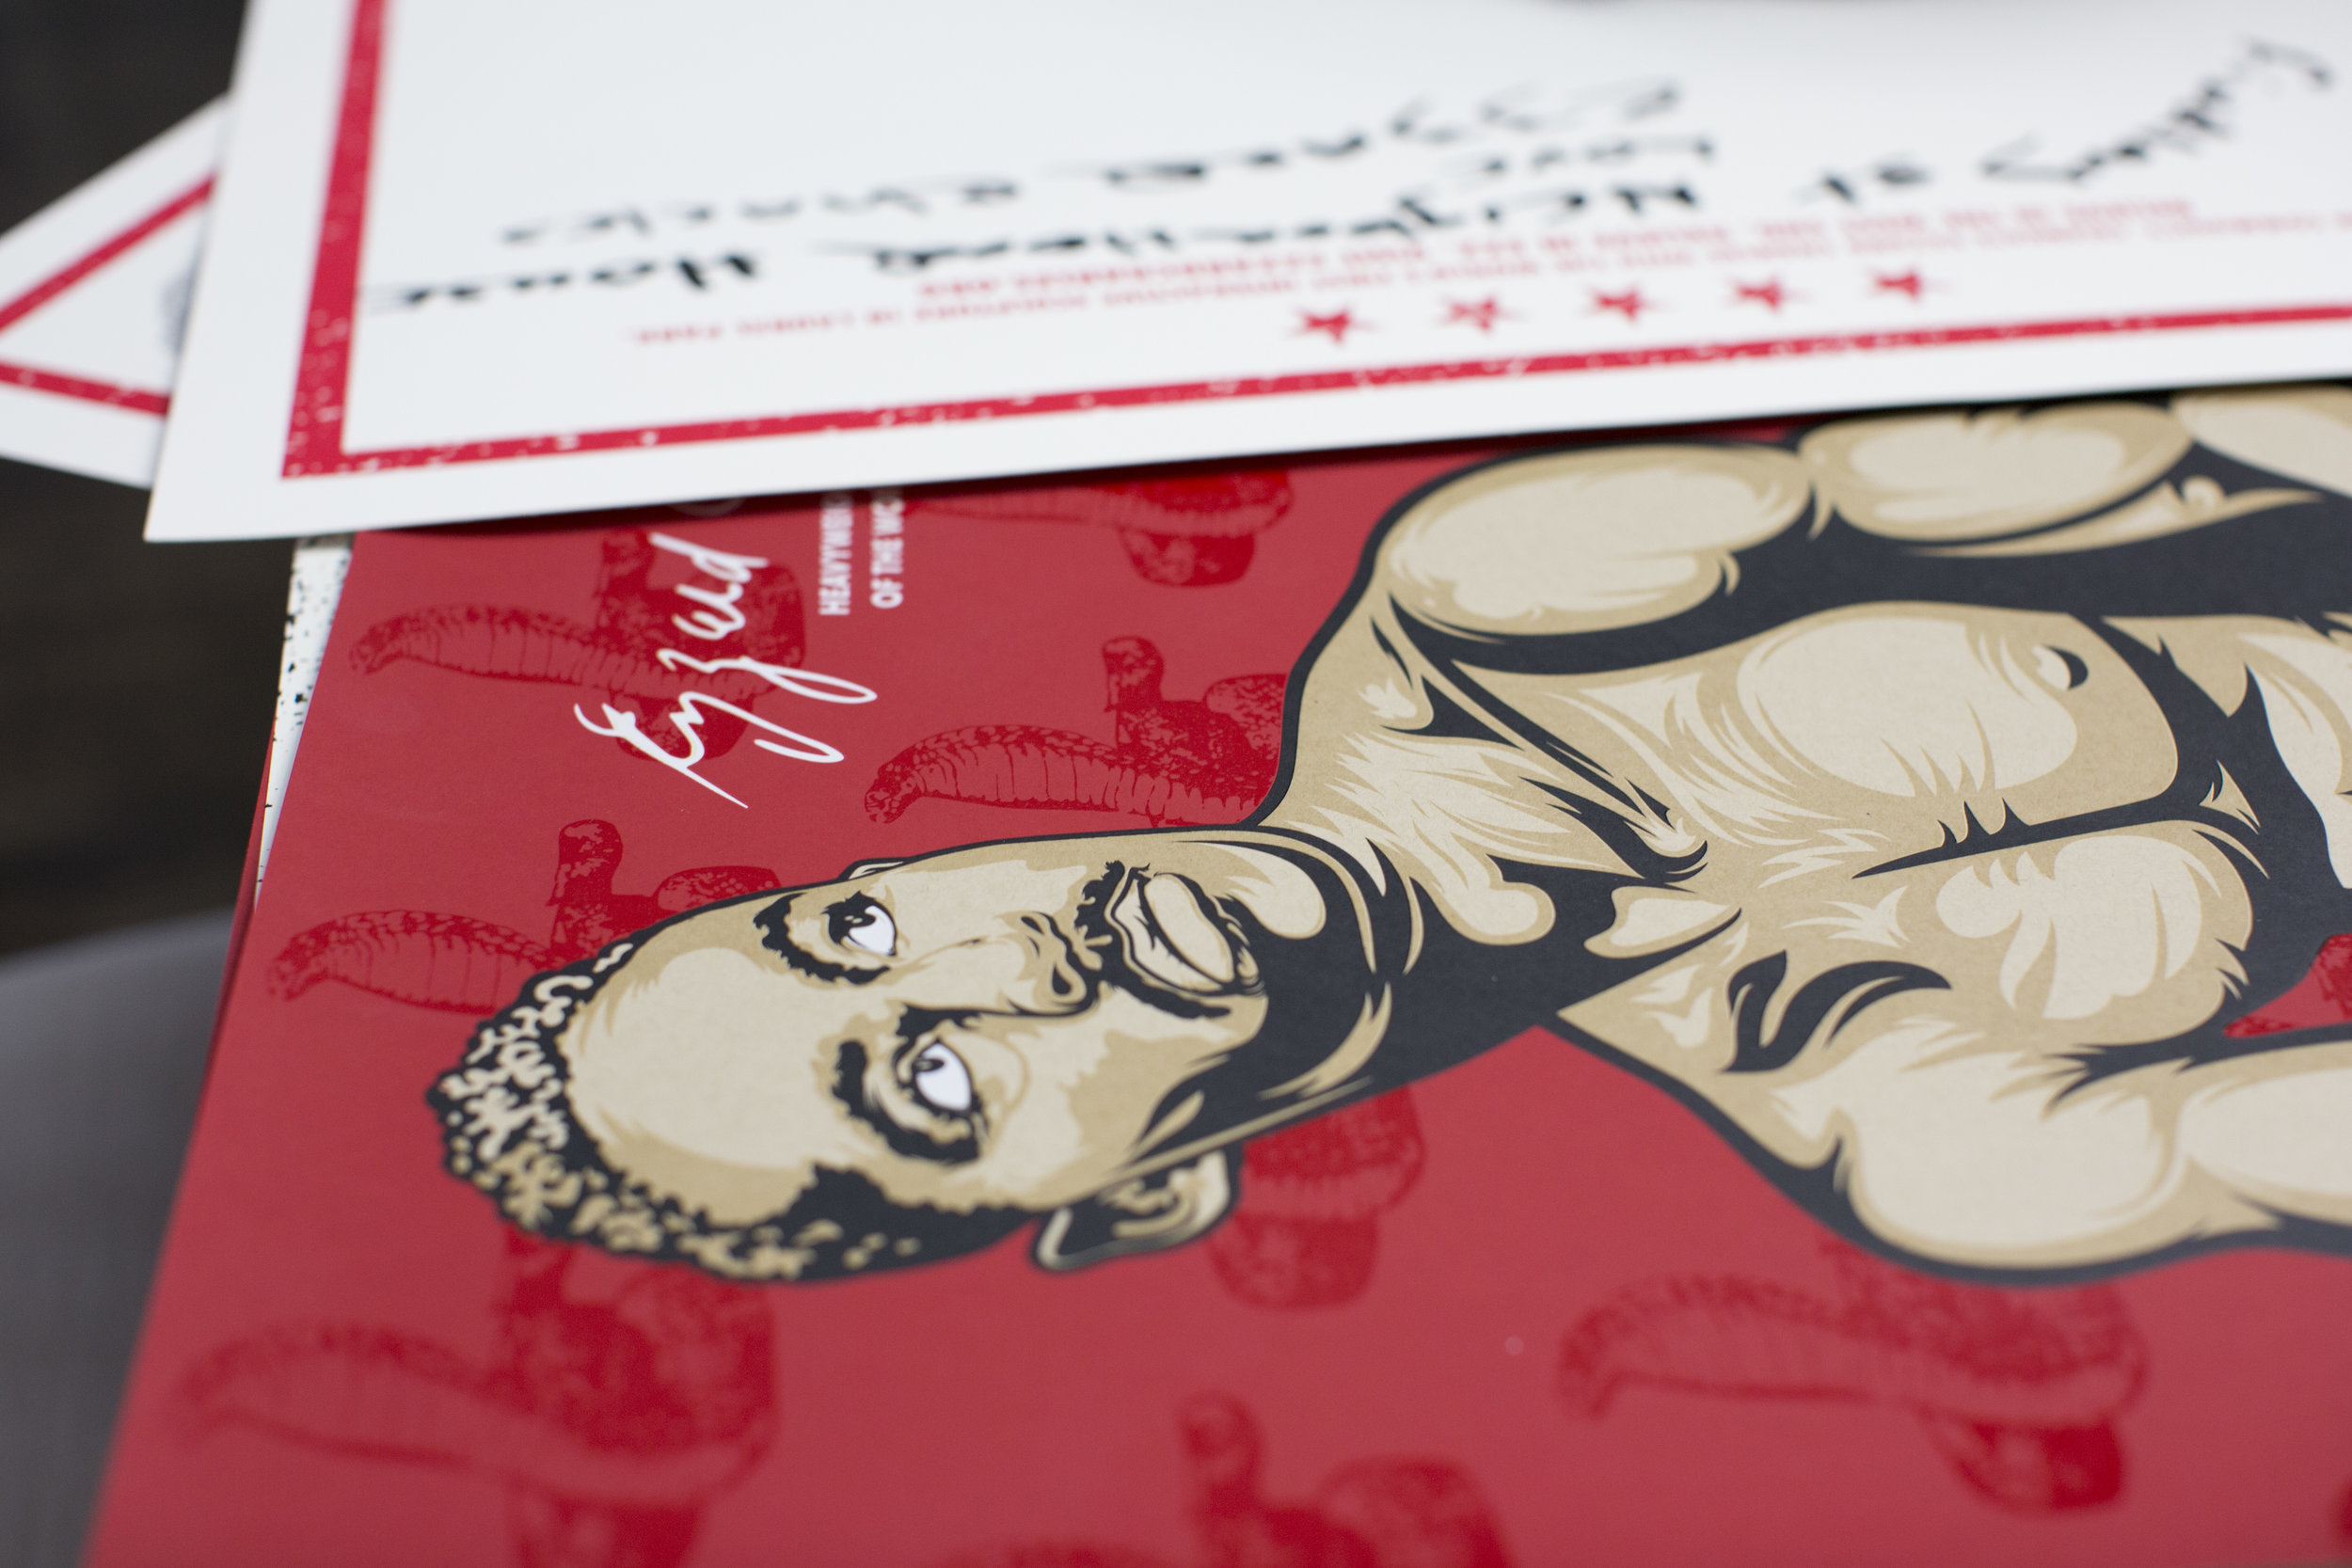 Ezzard Charles poster prints designed and printed by We Have Become Vikings, photo by Kailah Ware